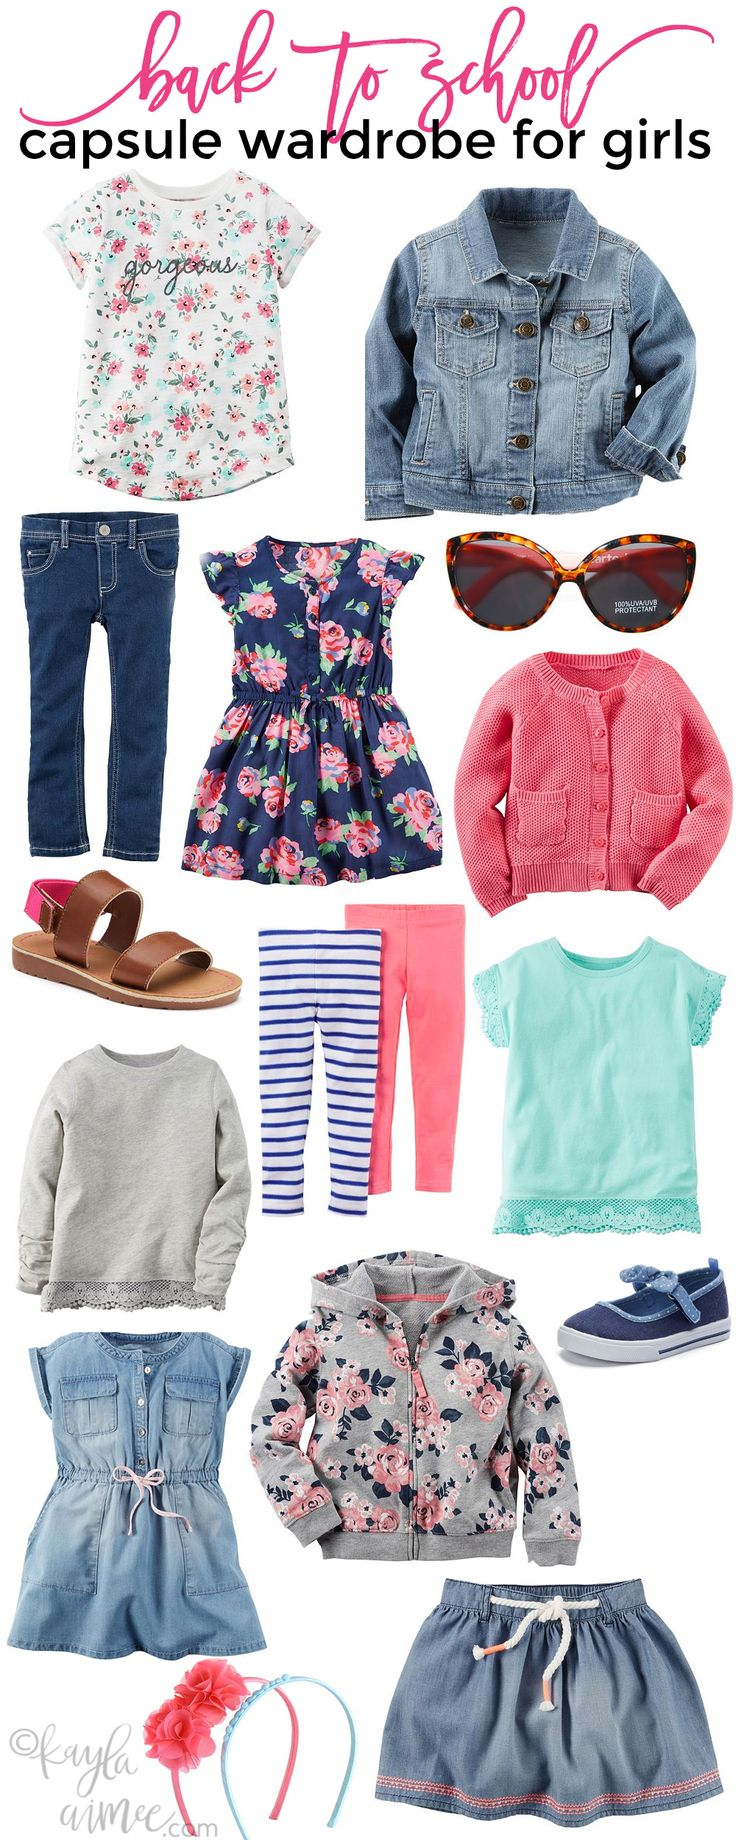 Back To School: Capsule Wardrobe For Girls